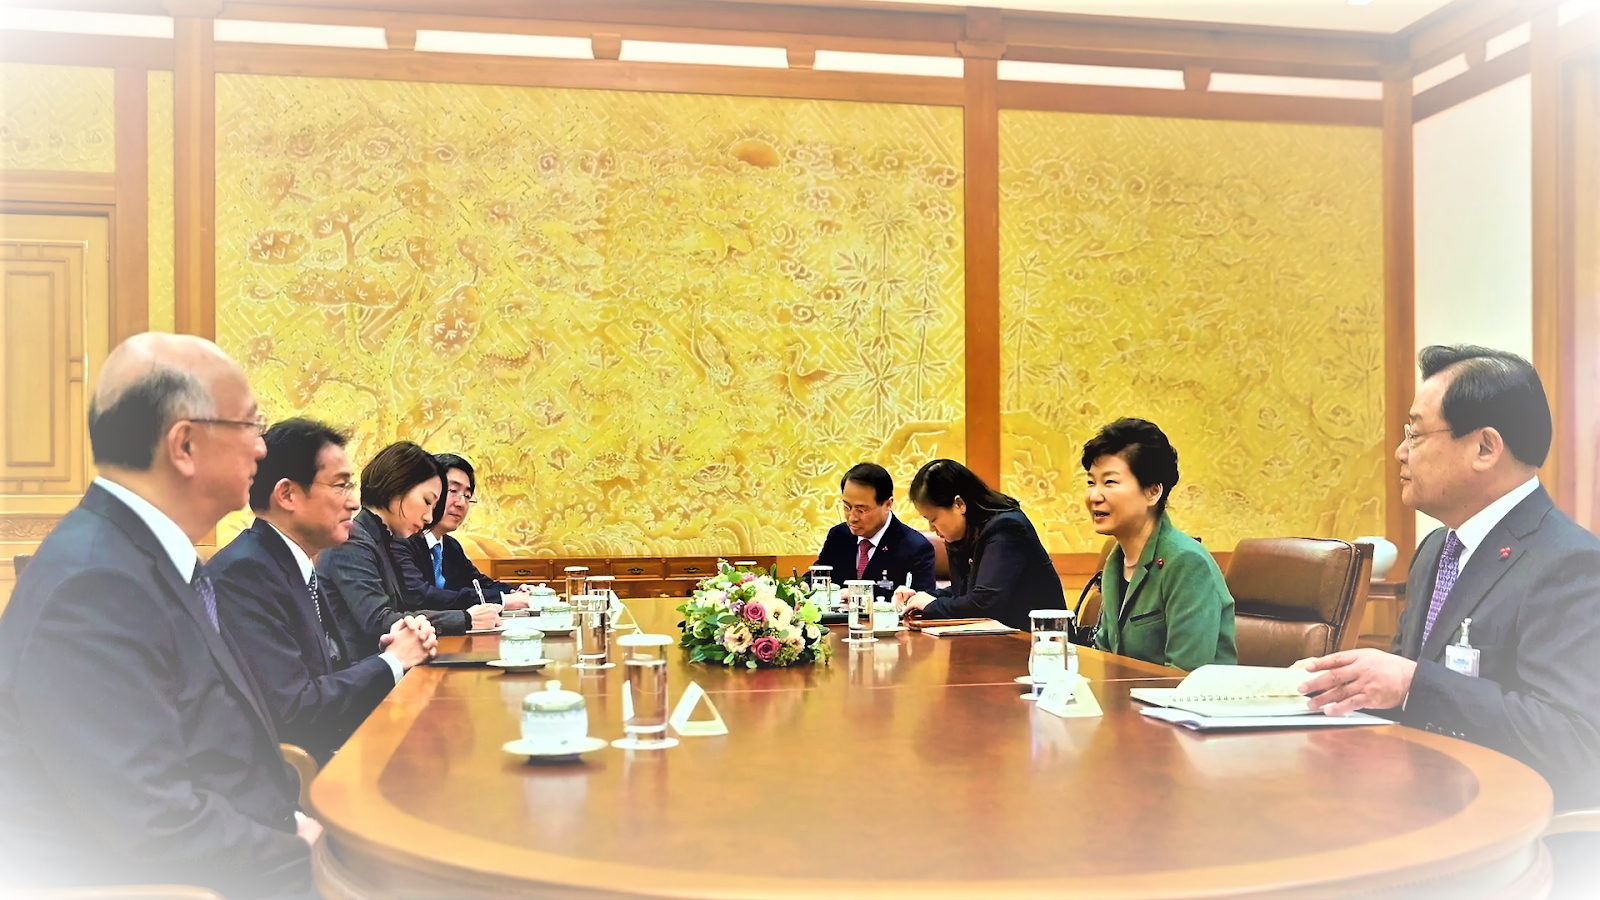 What is the relationship between Japan and Korea? officials meeting